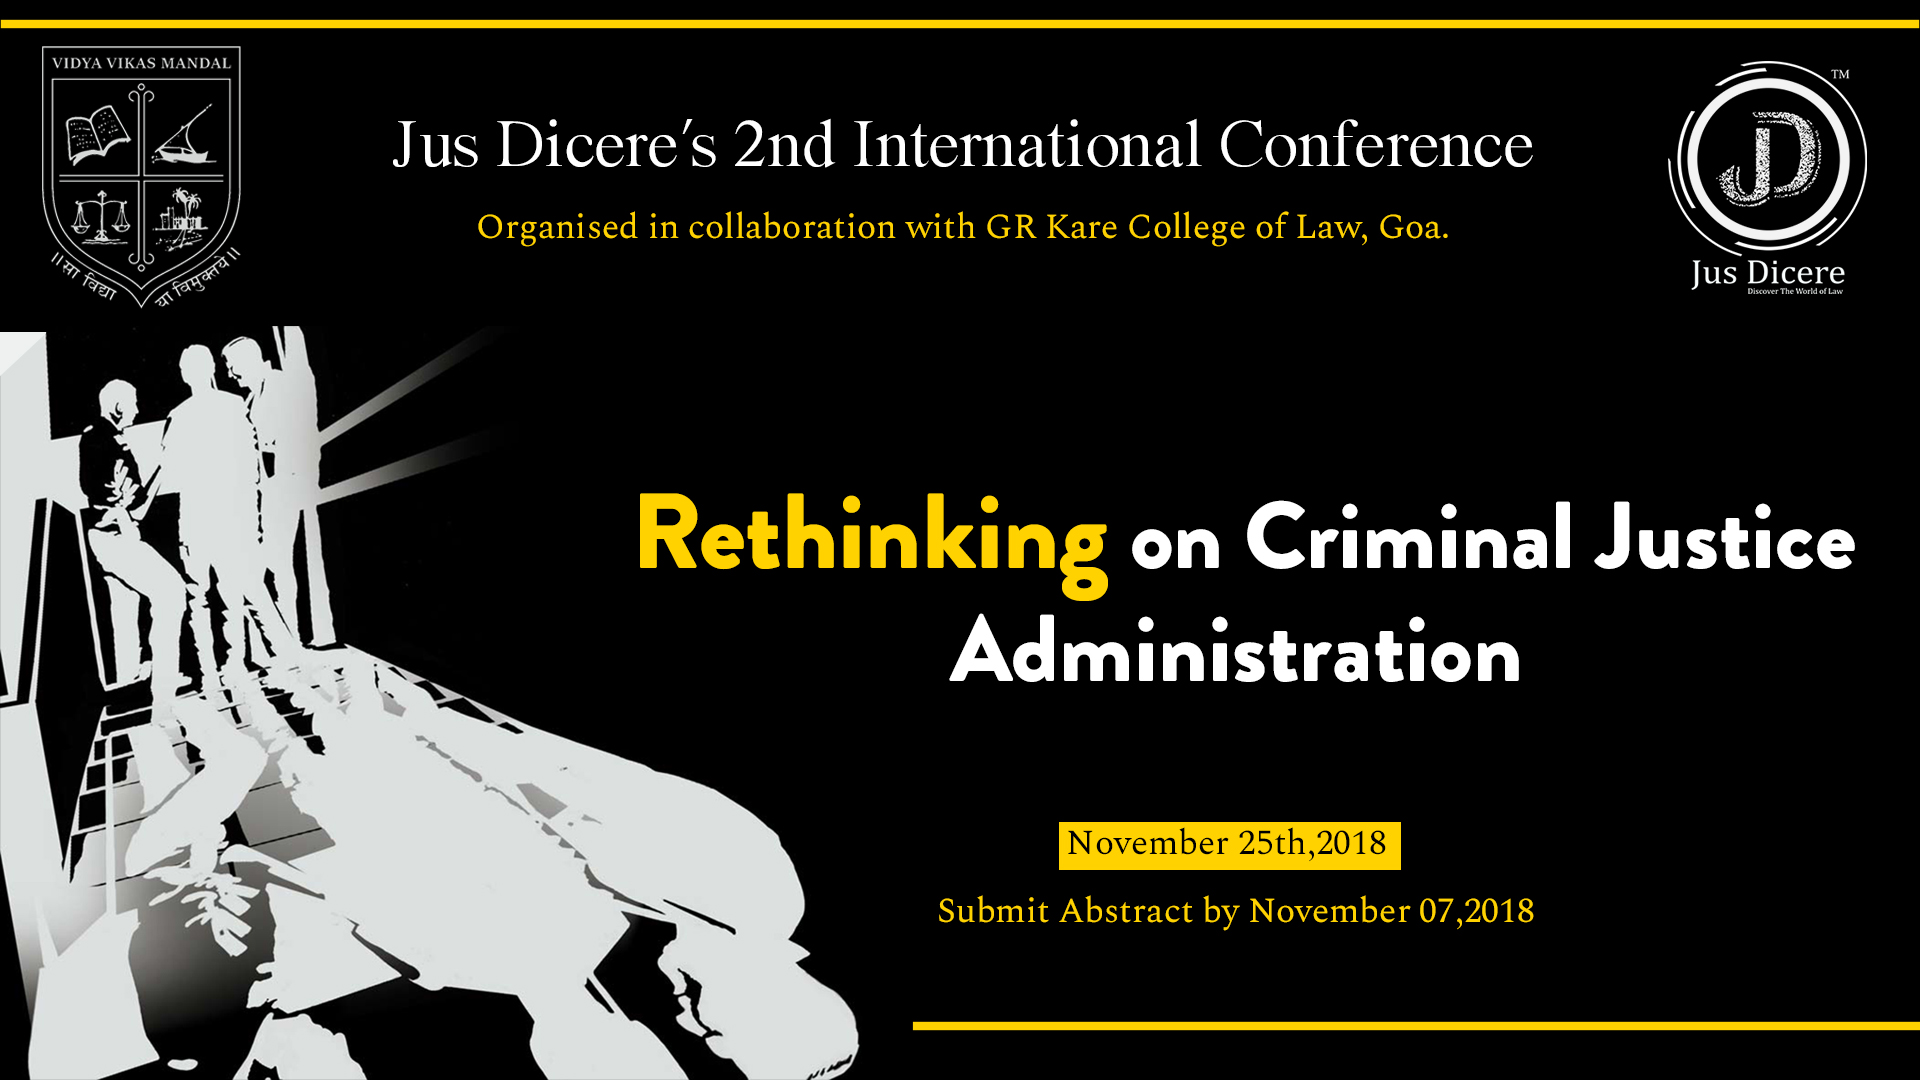 Conference on Rethinking on Criminal Justice Administration Goa